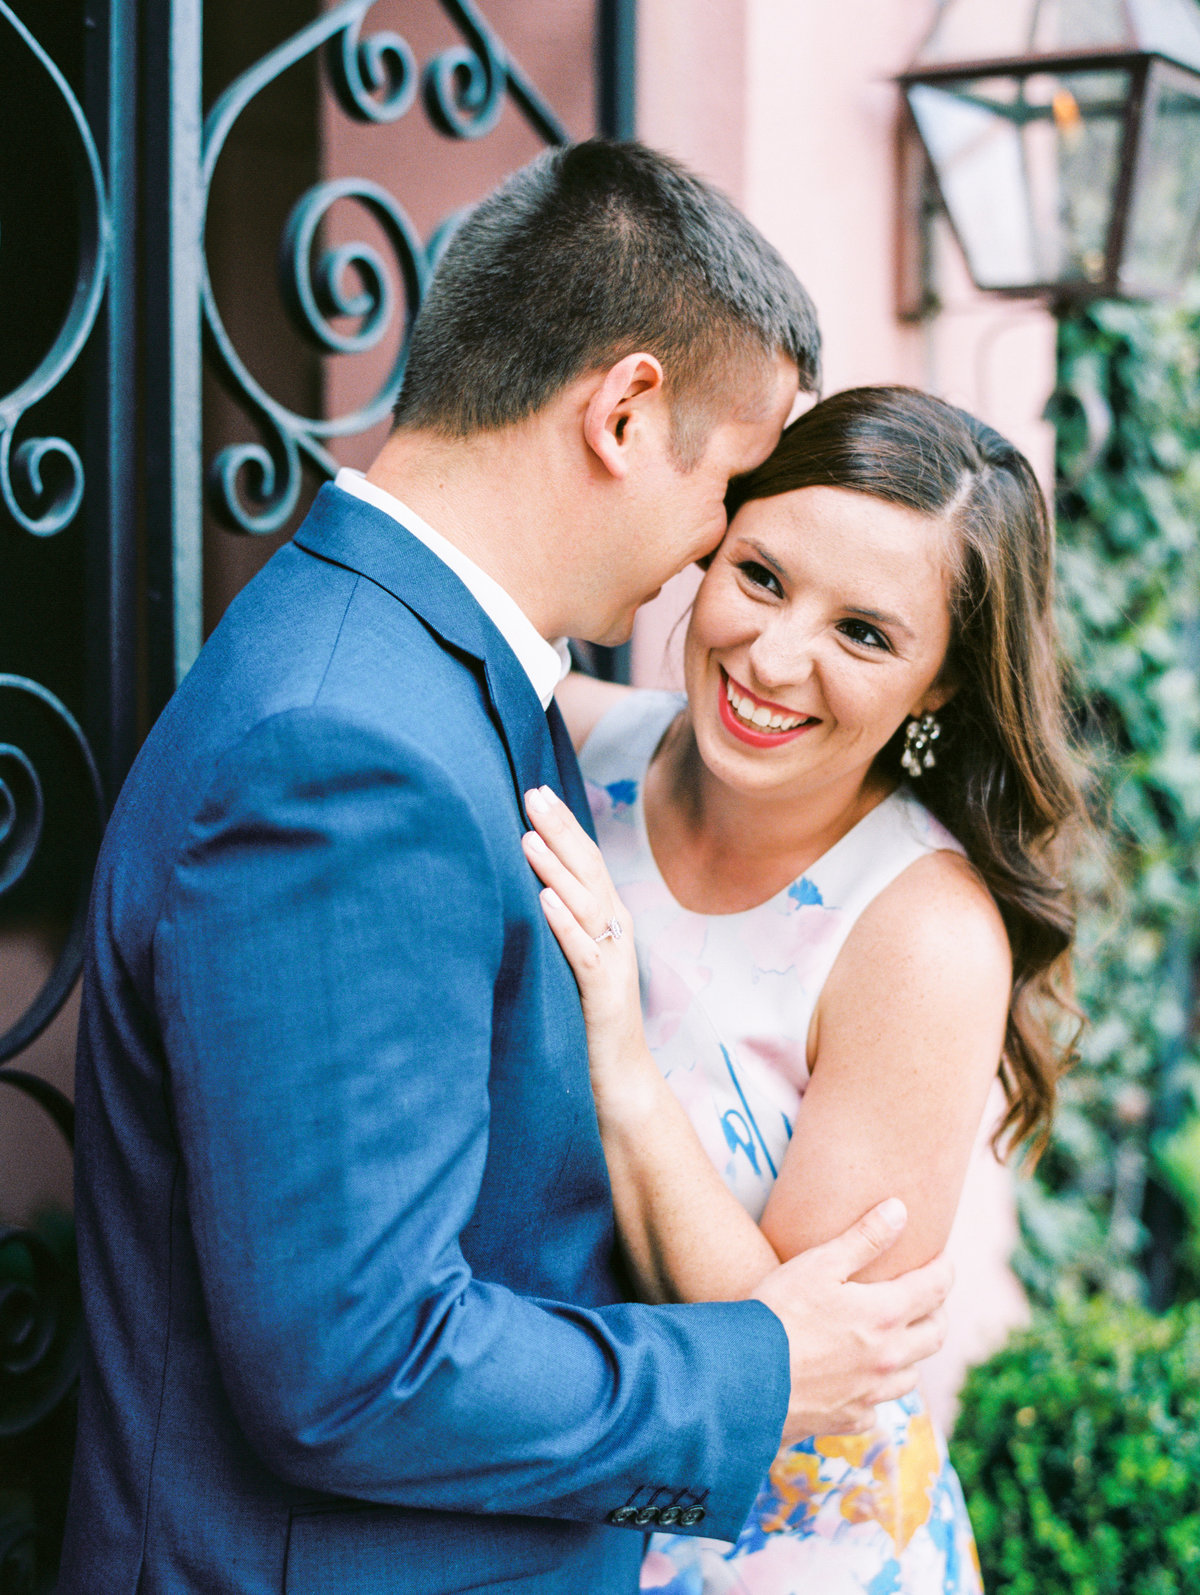 charleston-engagement-photos-wedding-photographer-philip-casey-photo-026